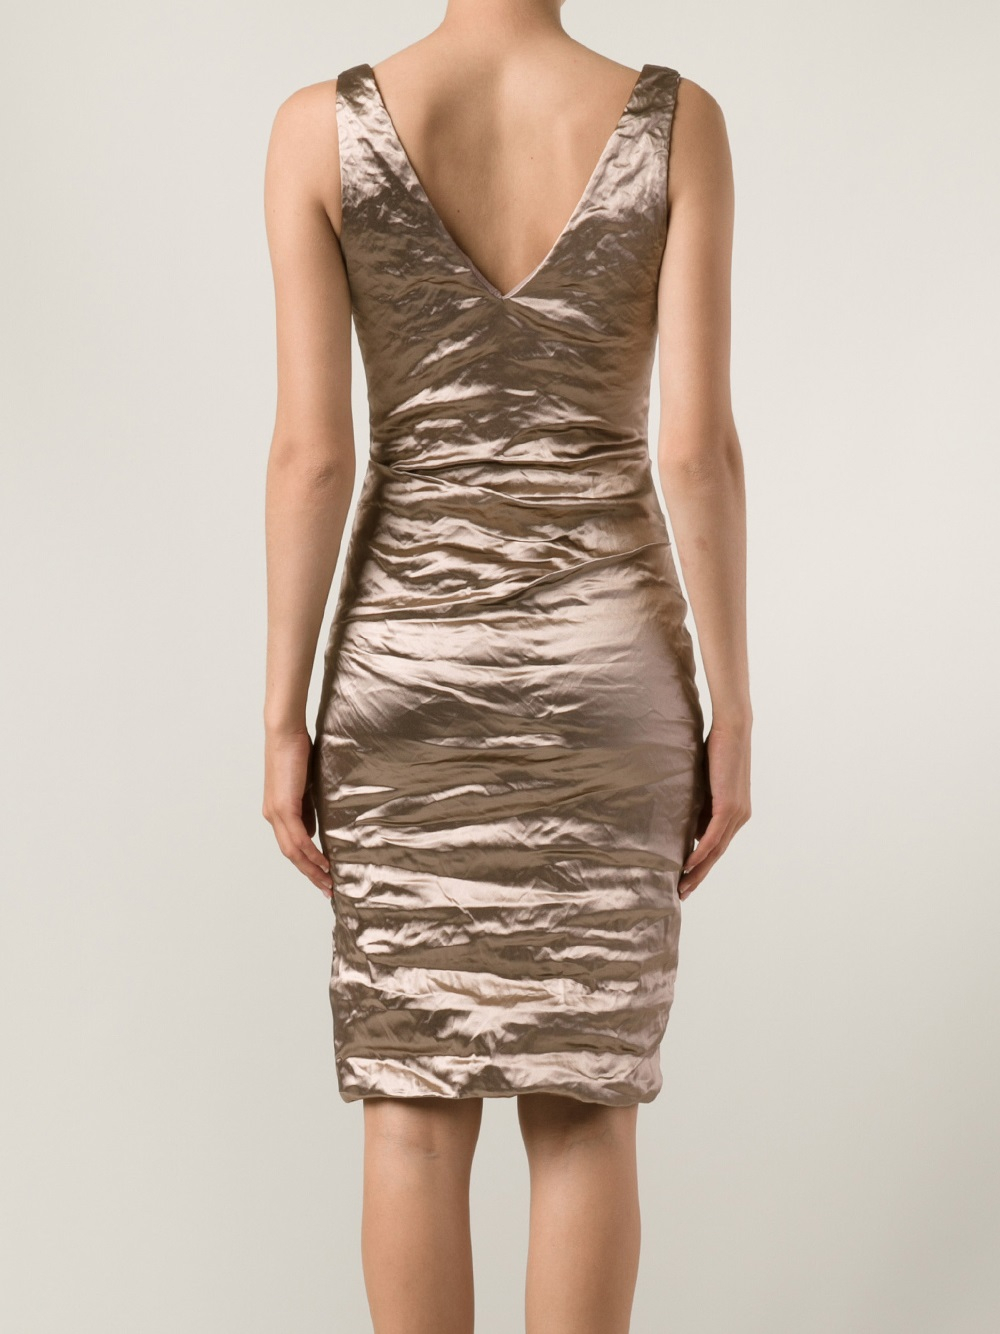 Nicole miller Cocktail Dress in Metallic | Lyst